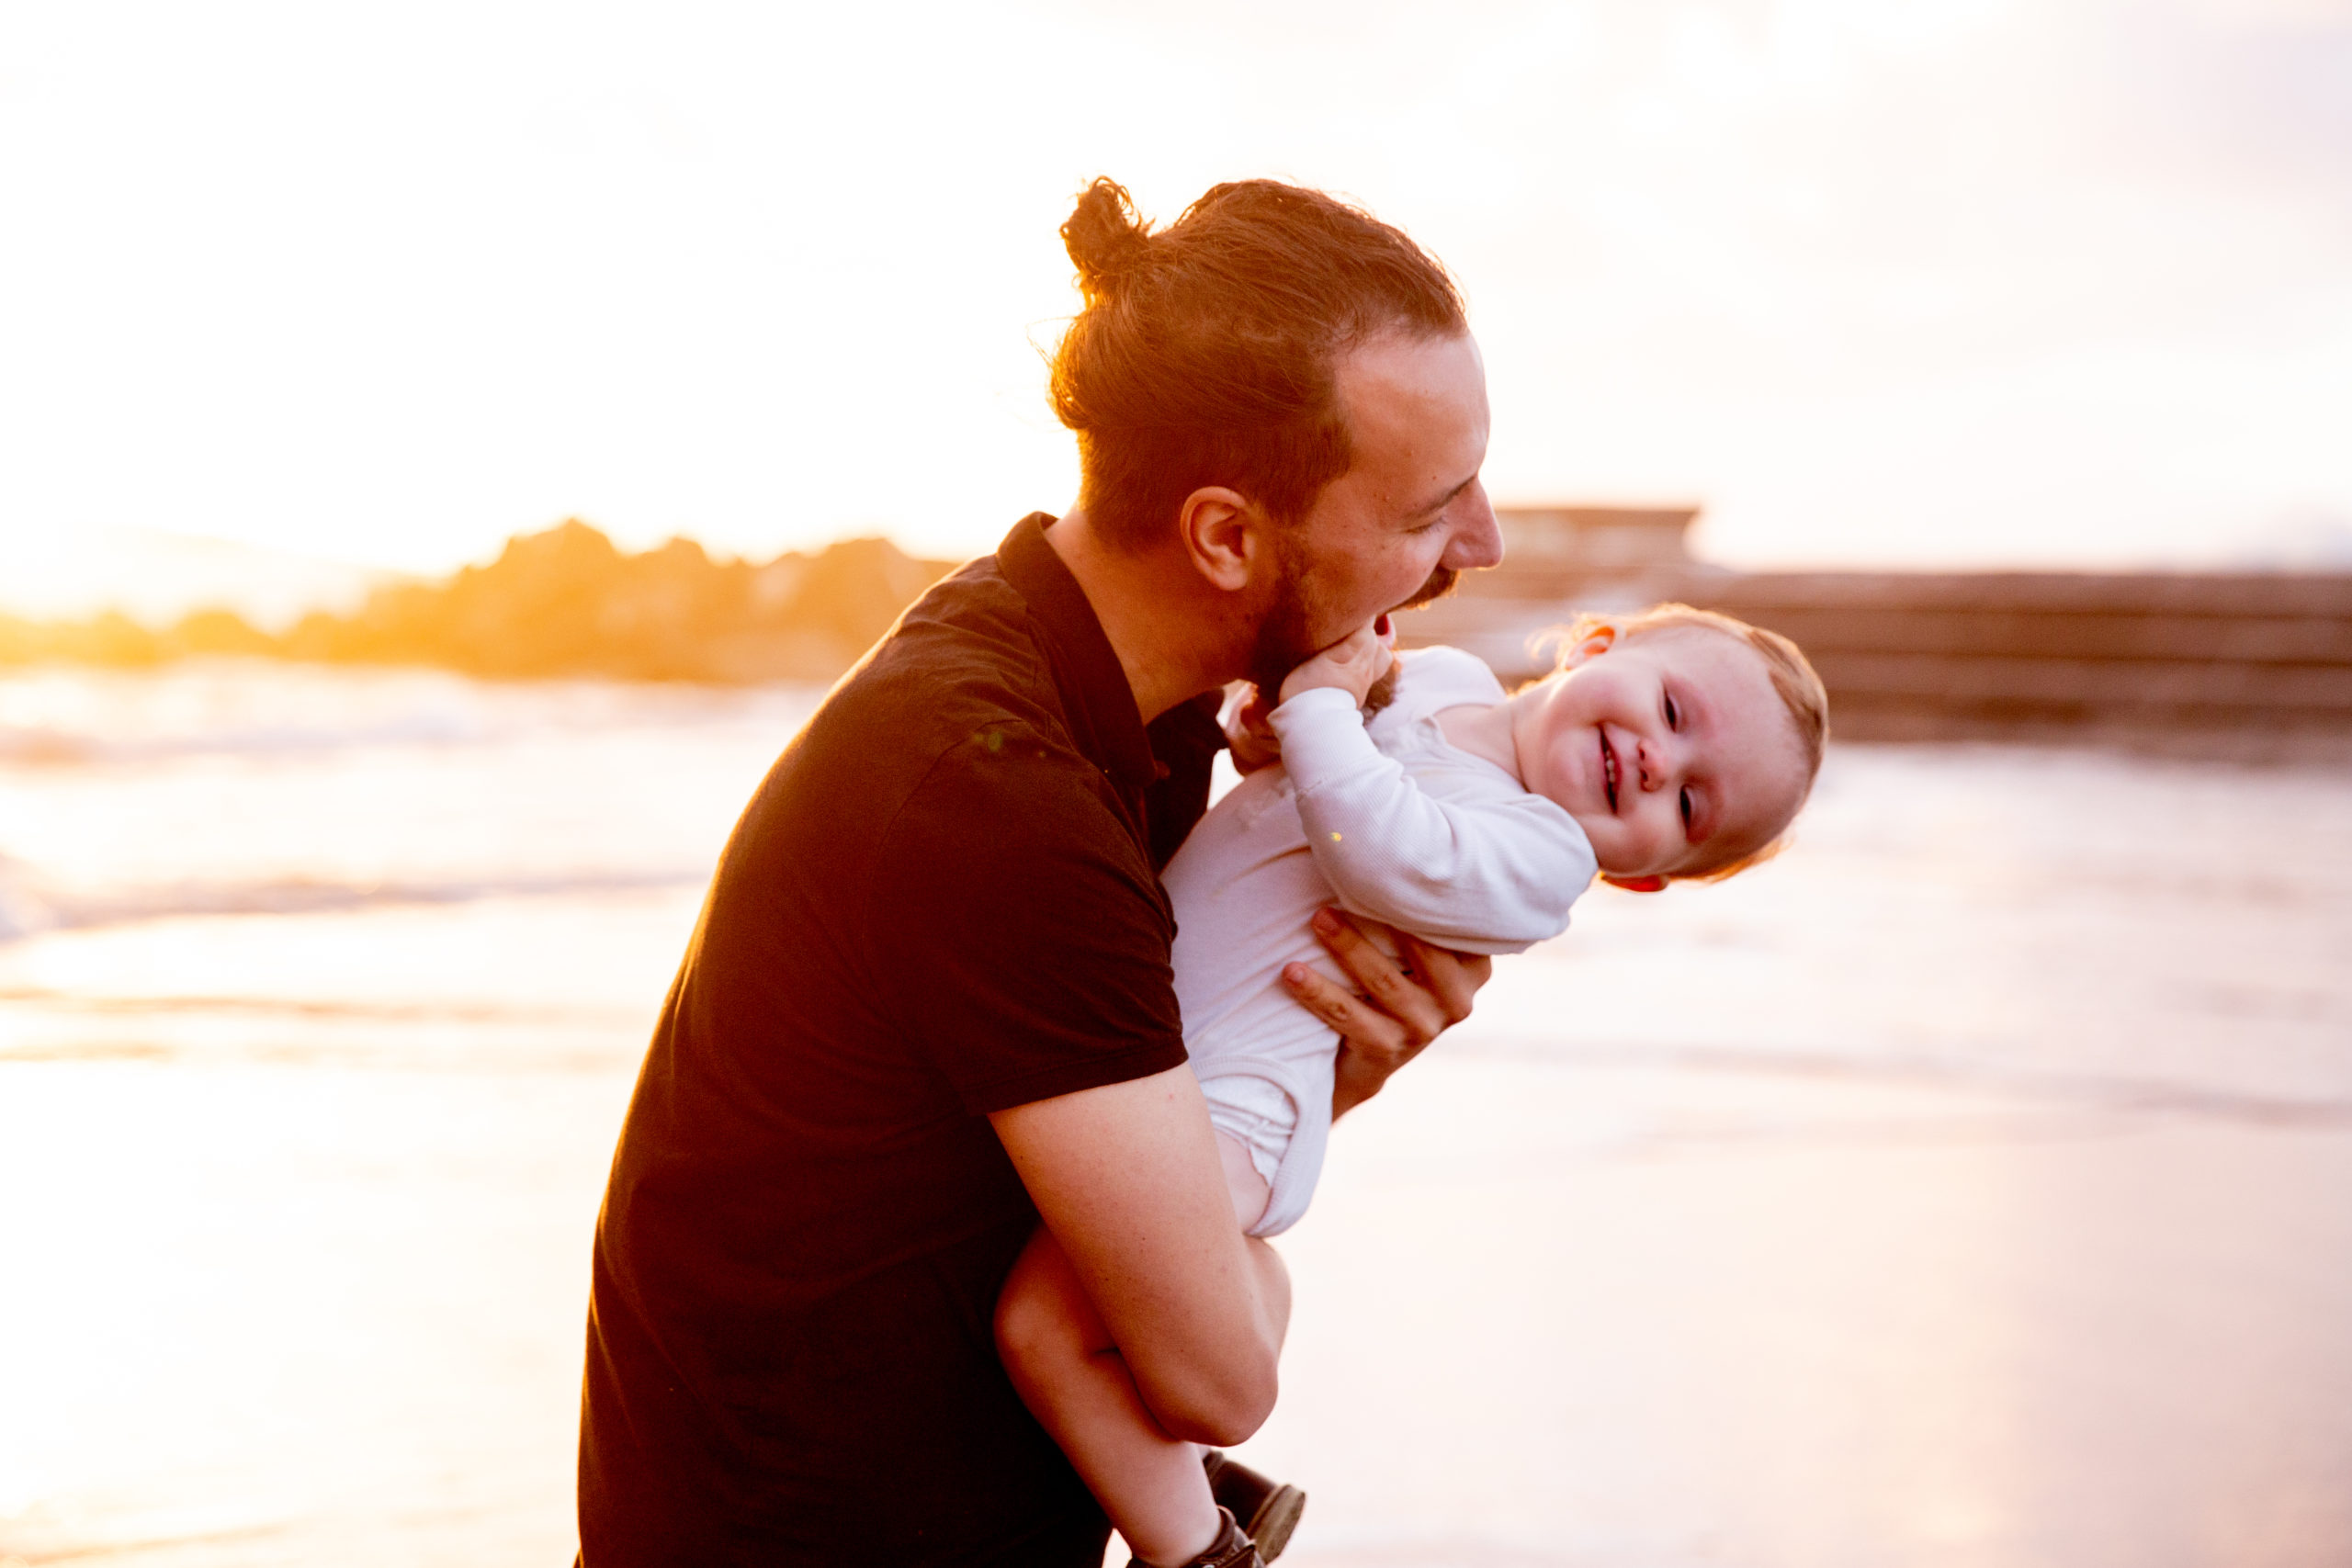 dad playing with child on the beach